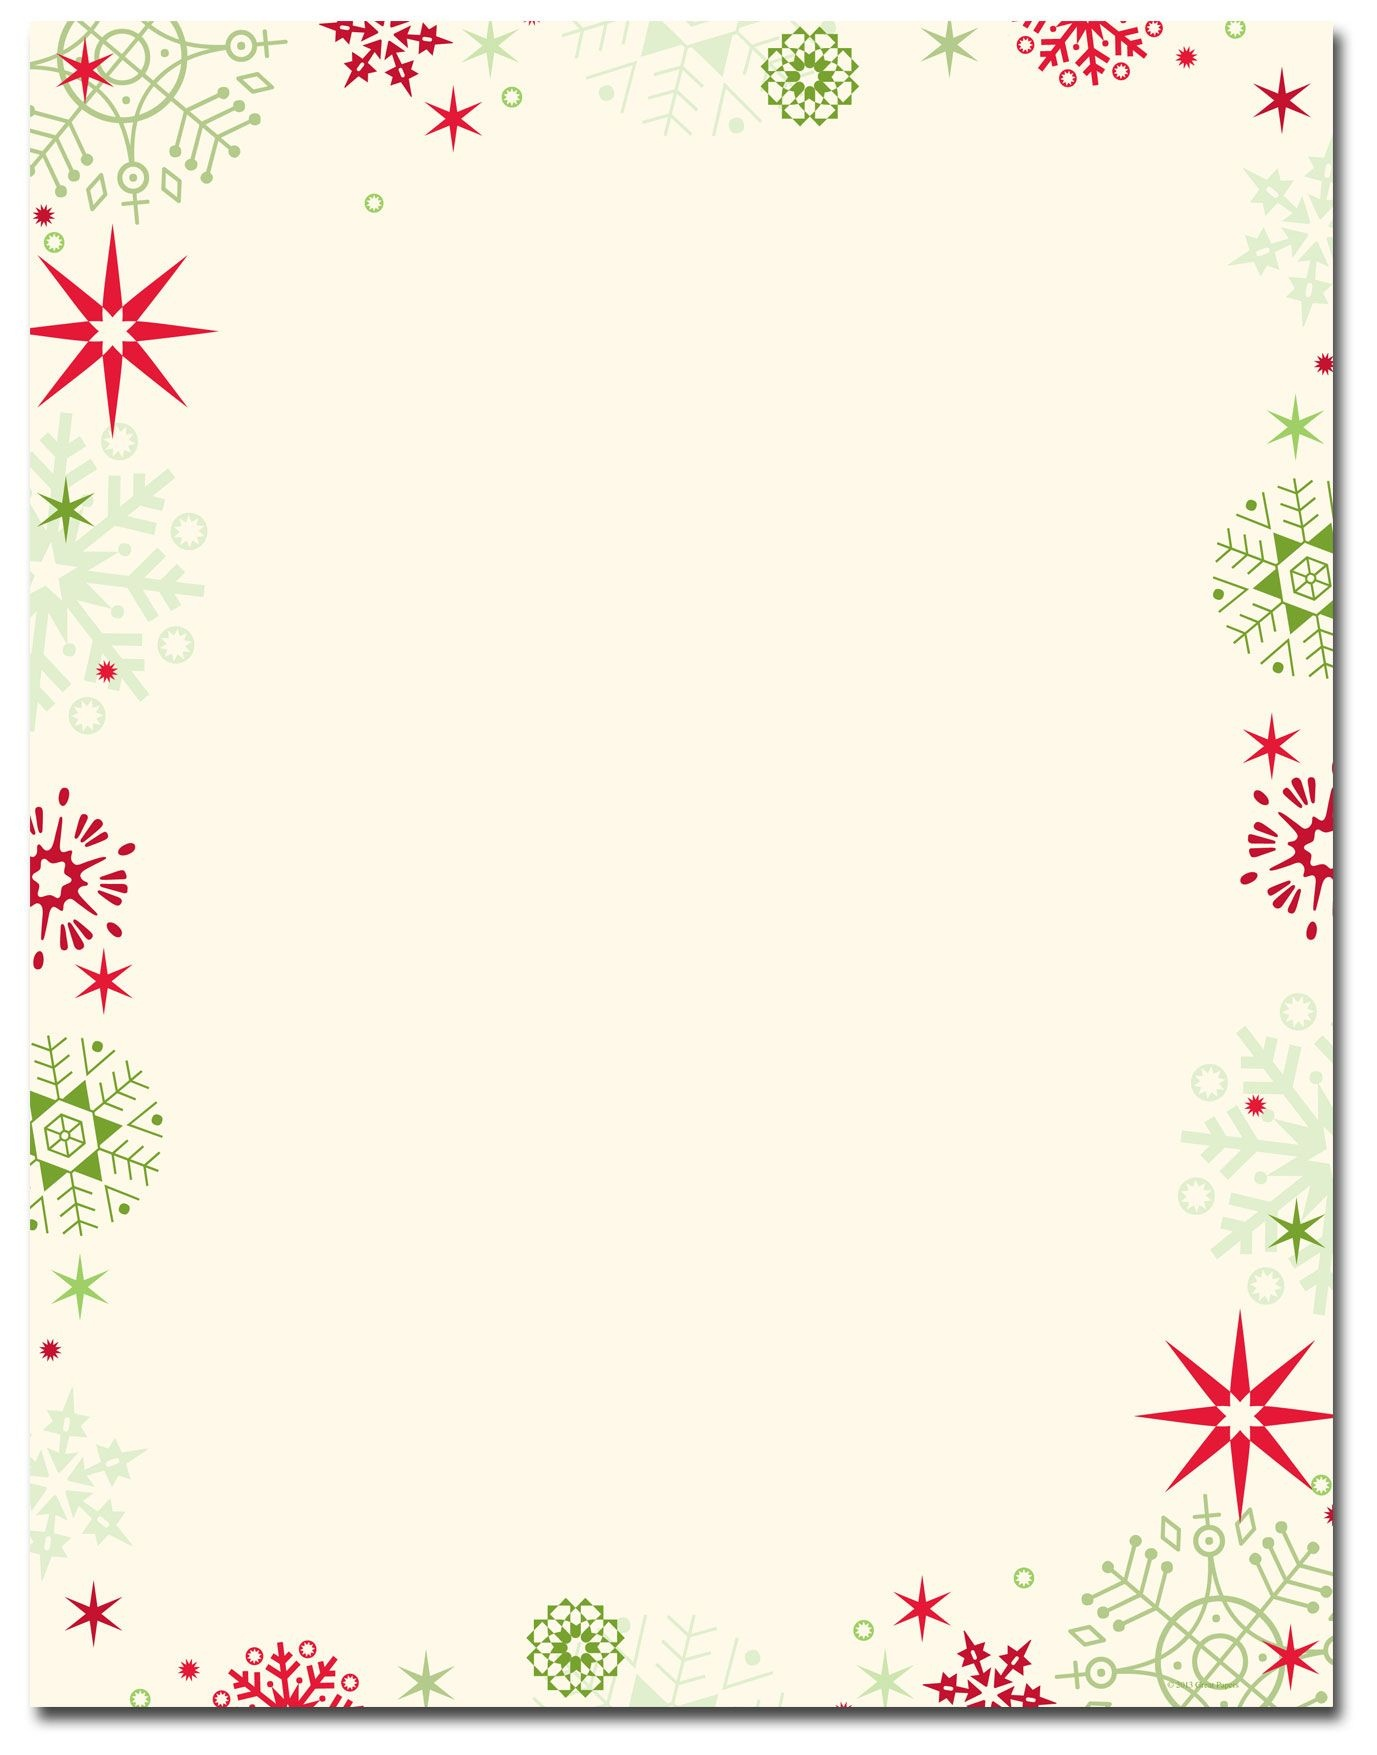 Red & Green Flakes Letterhead   Holiday Papers   Christmas - Free Printable Christmas Stationary Paper